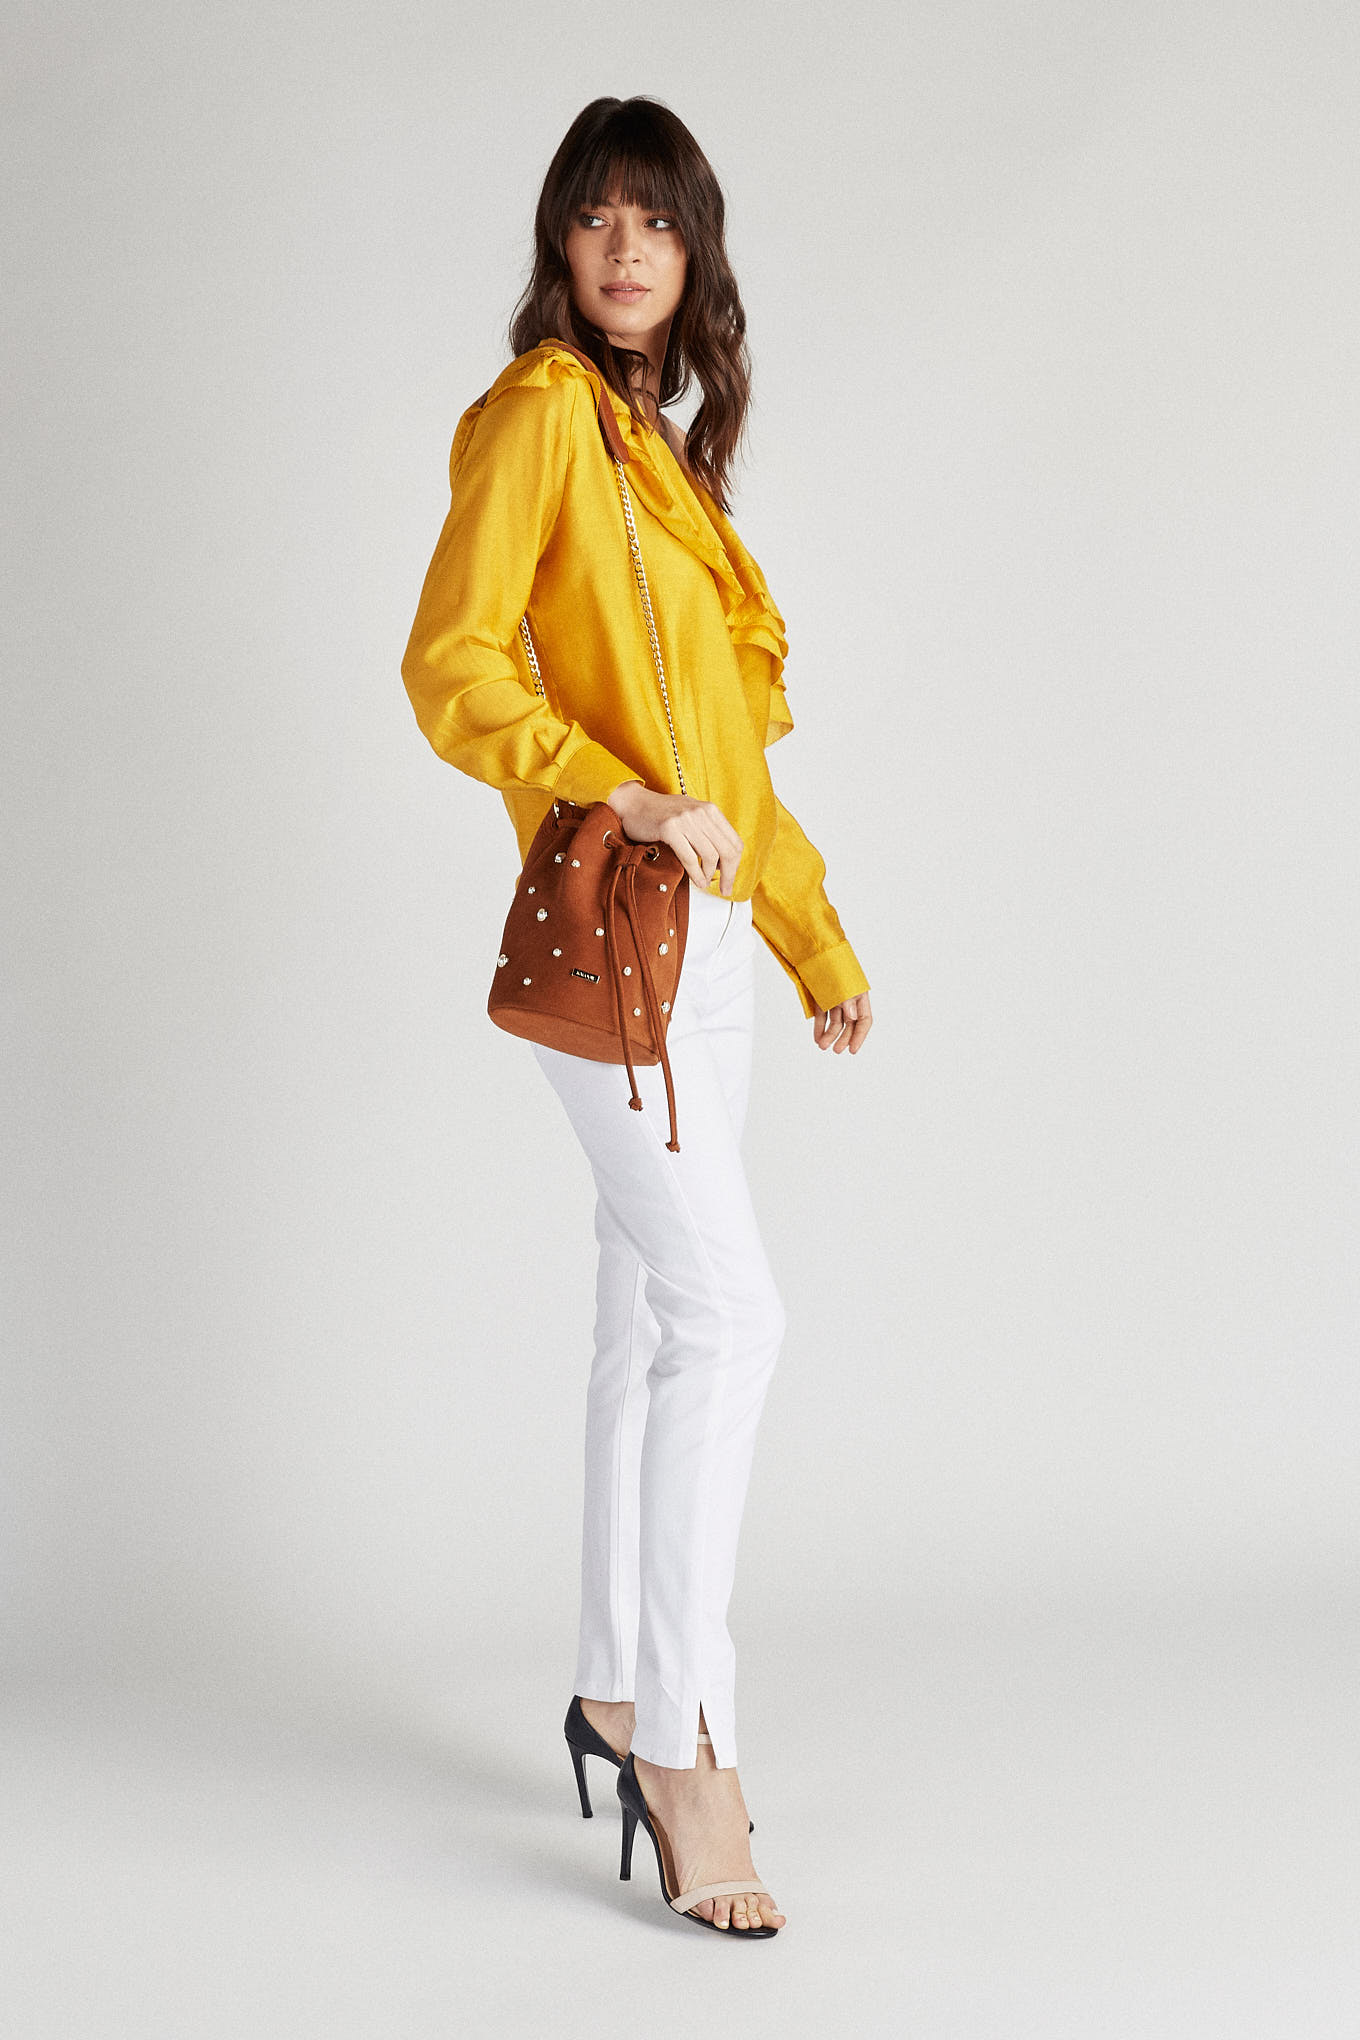 Blouse Yellow Fantasy Woman